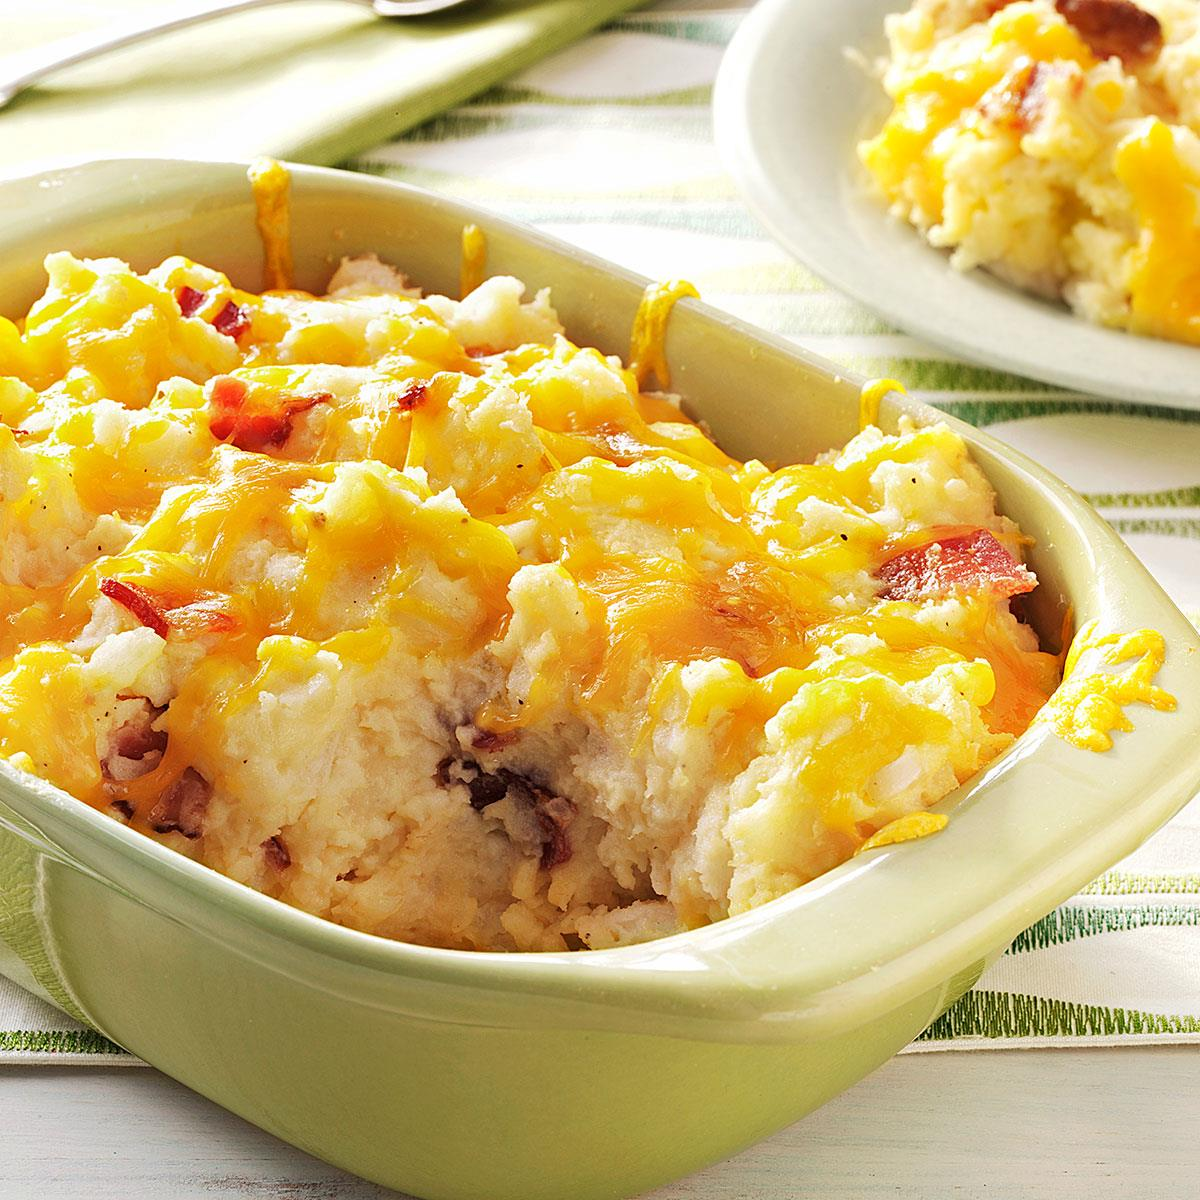 Double Baked Mashed Potatoes Recipe How To Make It Taste Of Home